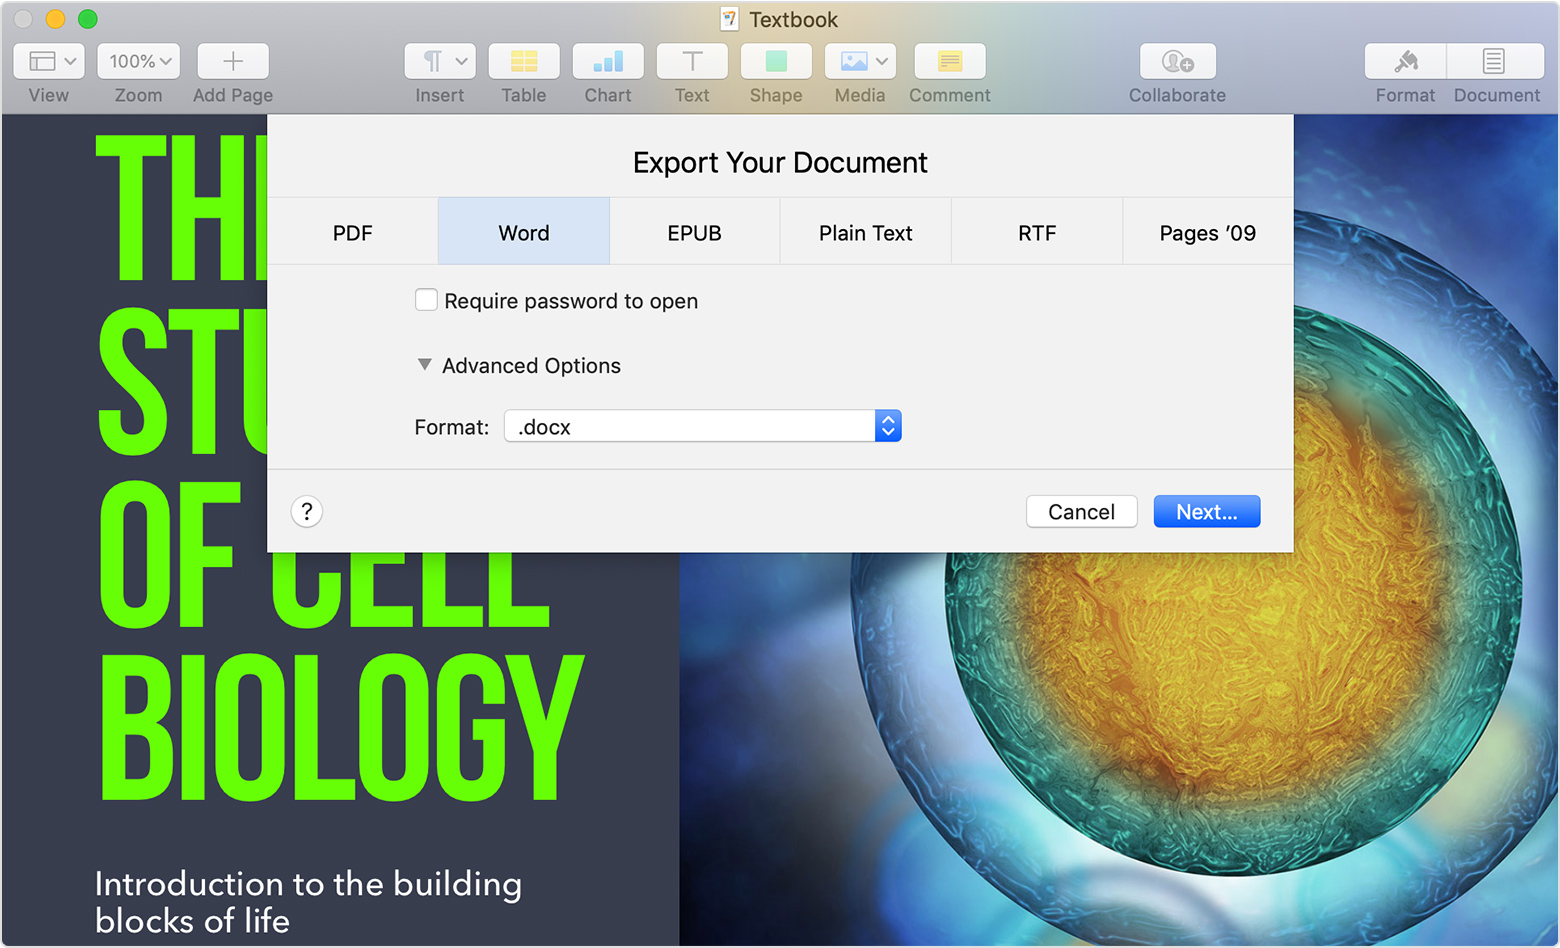 macos-pages-8-export-your-presentation.jpg